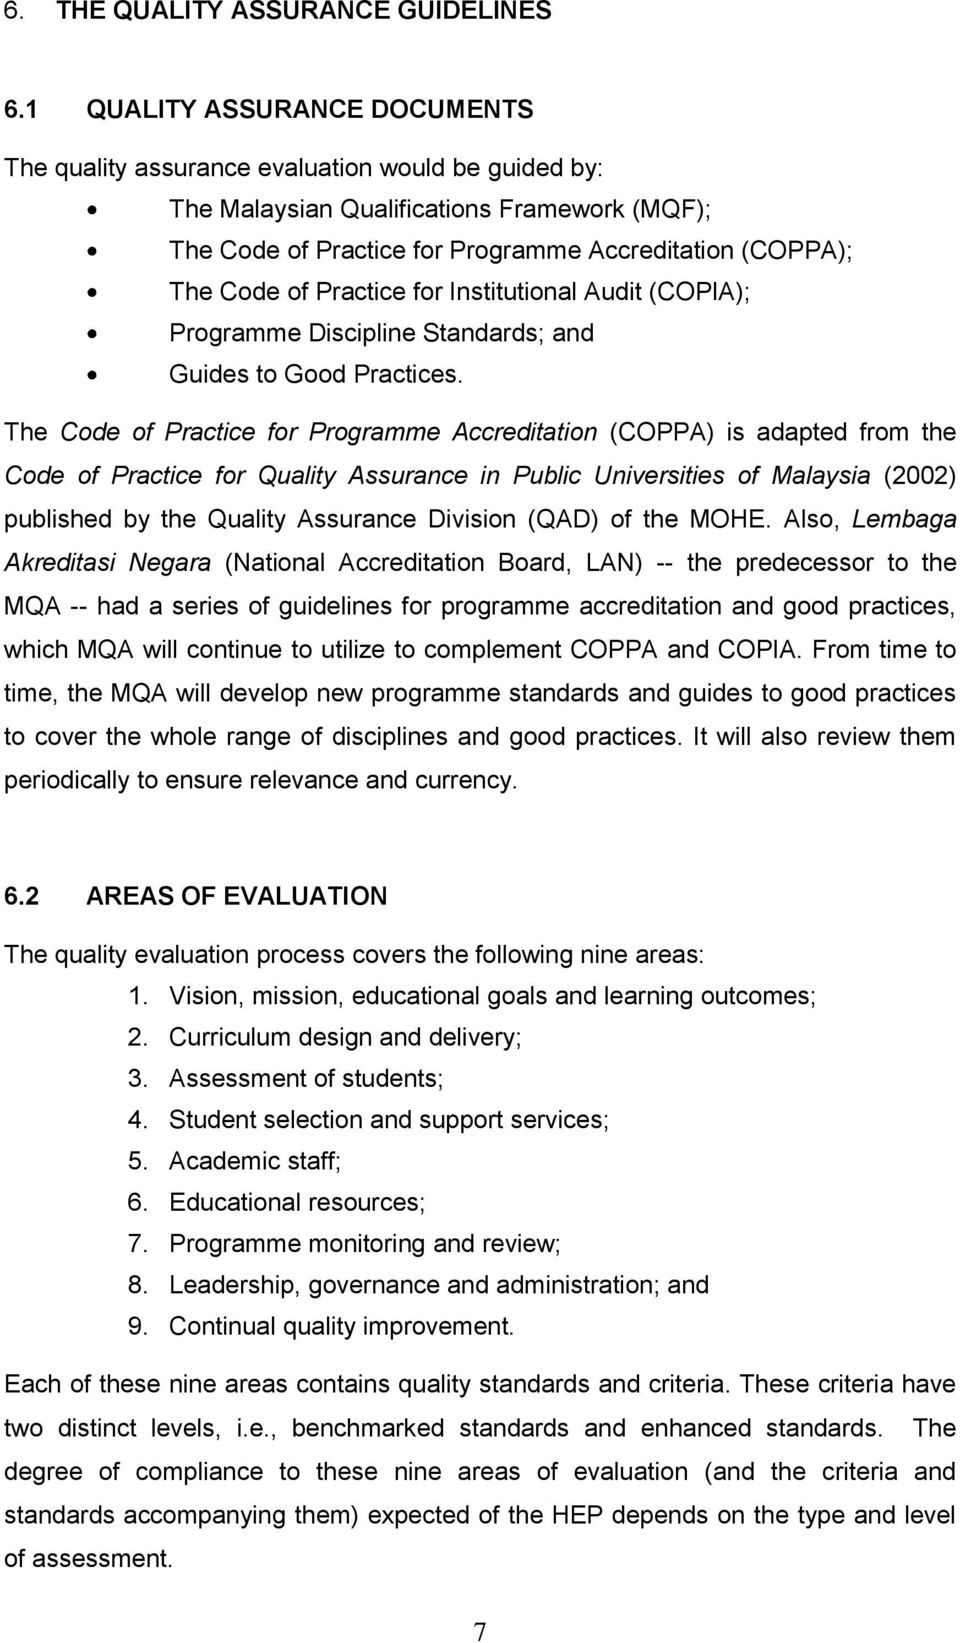 Institutinal Audit (COPIA); Prgramme Discipline Standards; and Guides t Gd Practices.